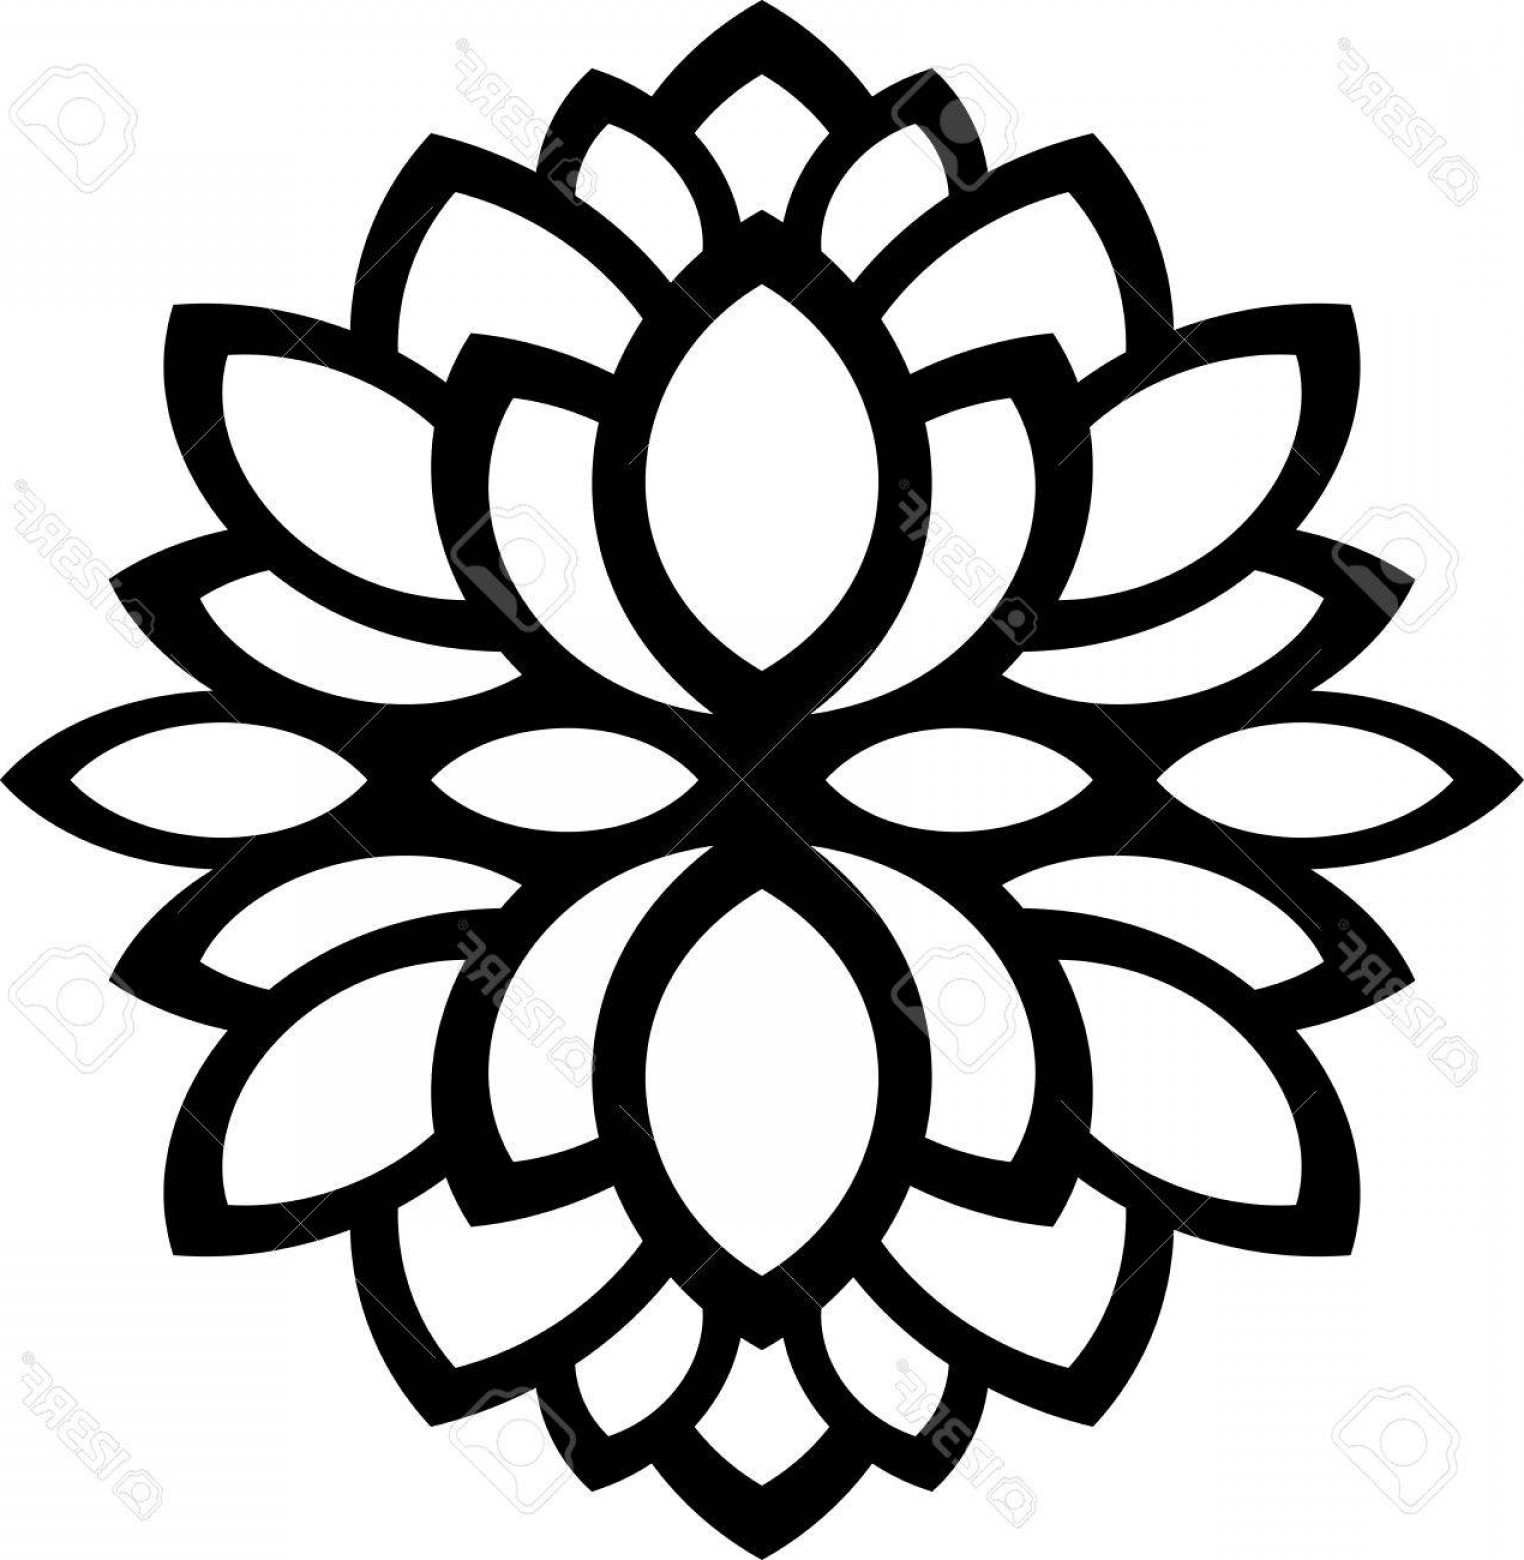 Vector CNC Designs: Photostock Vector Illustration Of Great Ornaments Leaf Flower Silhouette Ready For Cnc And Prints